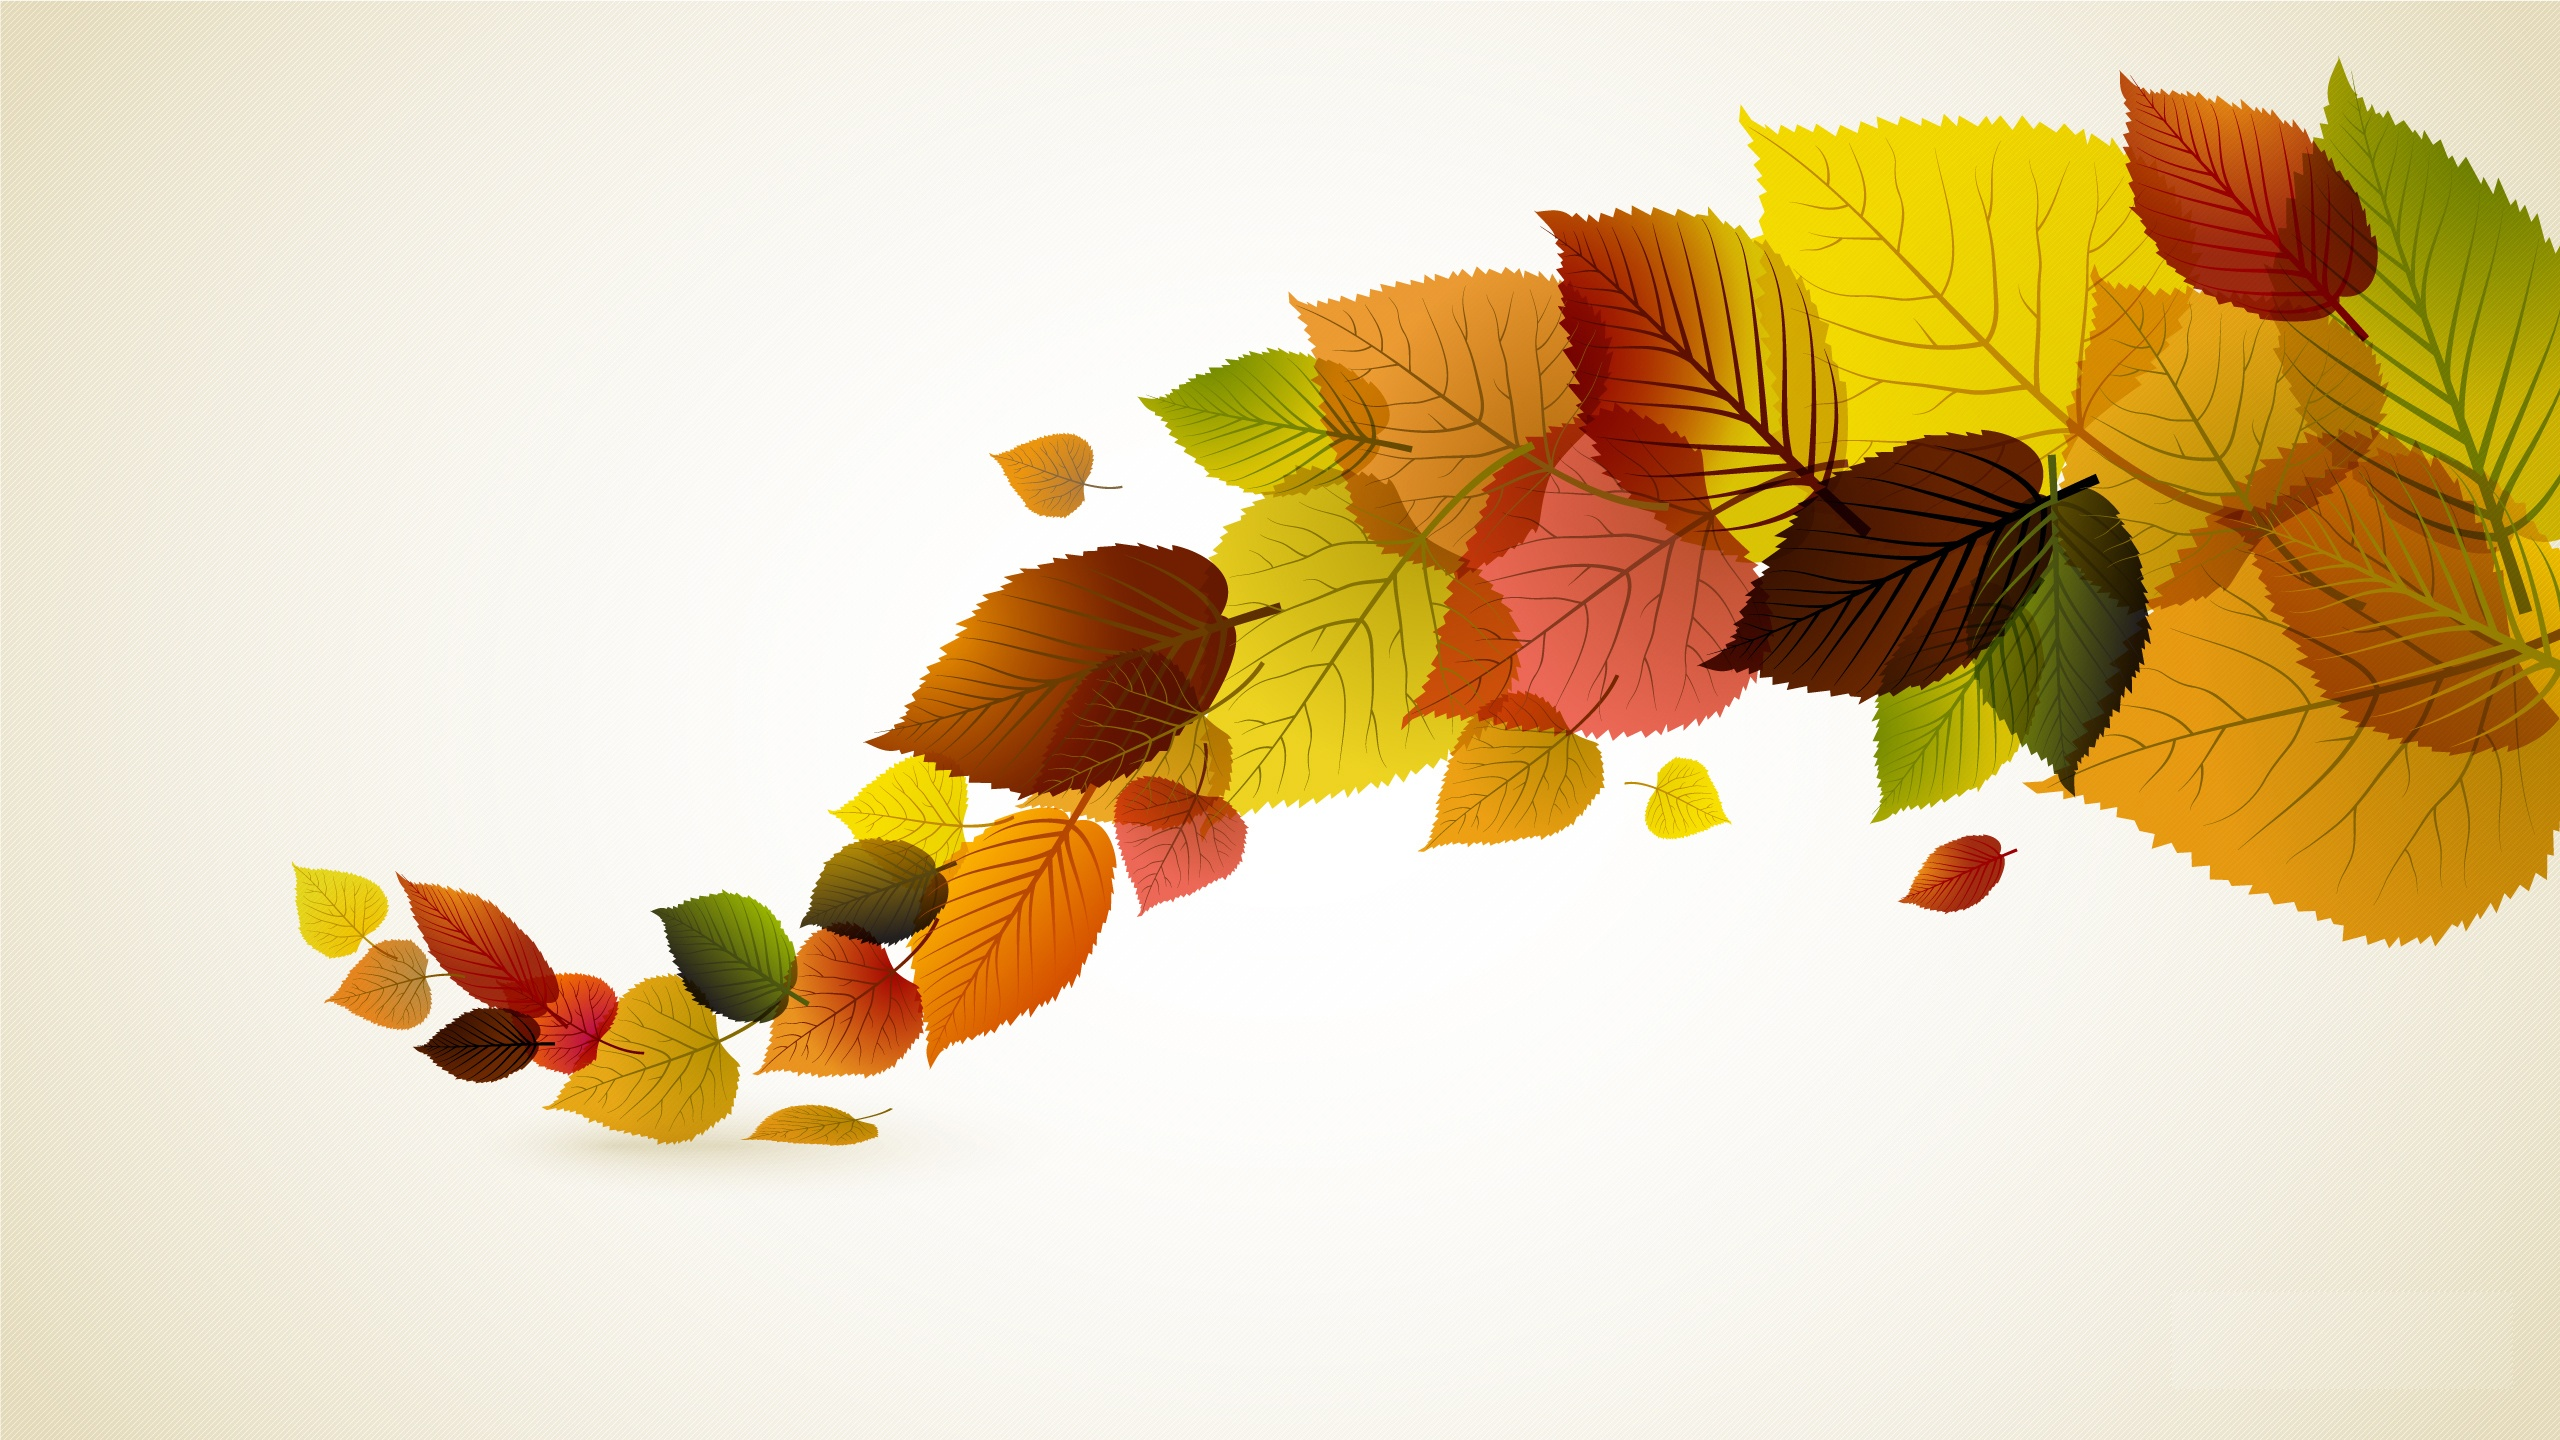 wallpaper autumn creative - photo #22